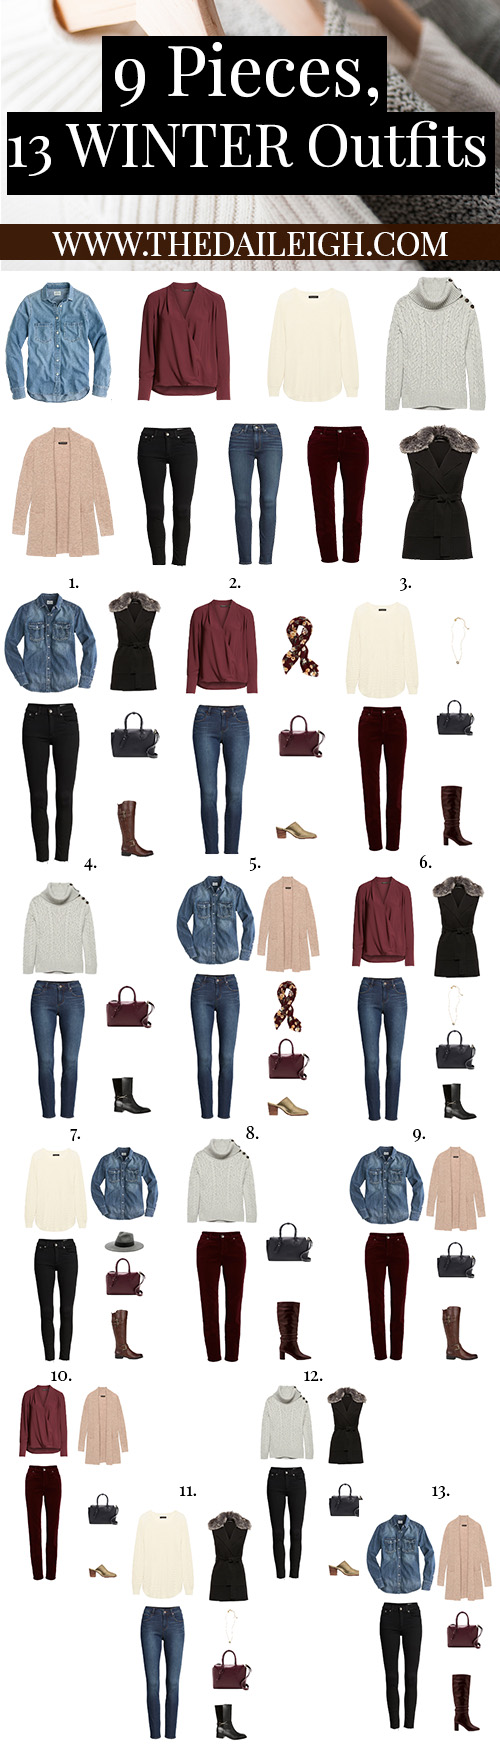 9 Pieces, 13 Winter Outfits